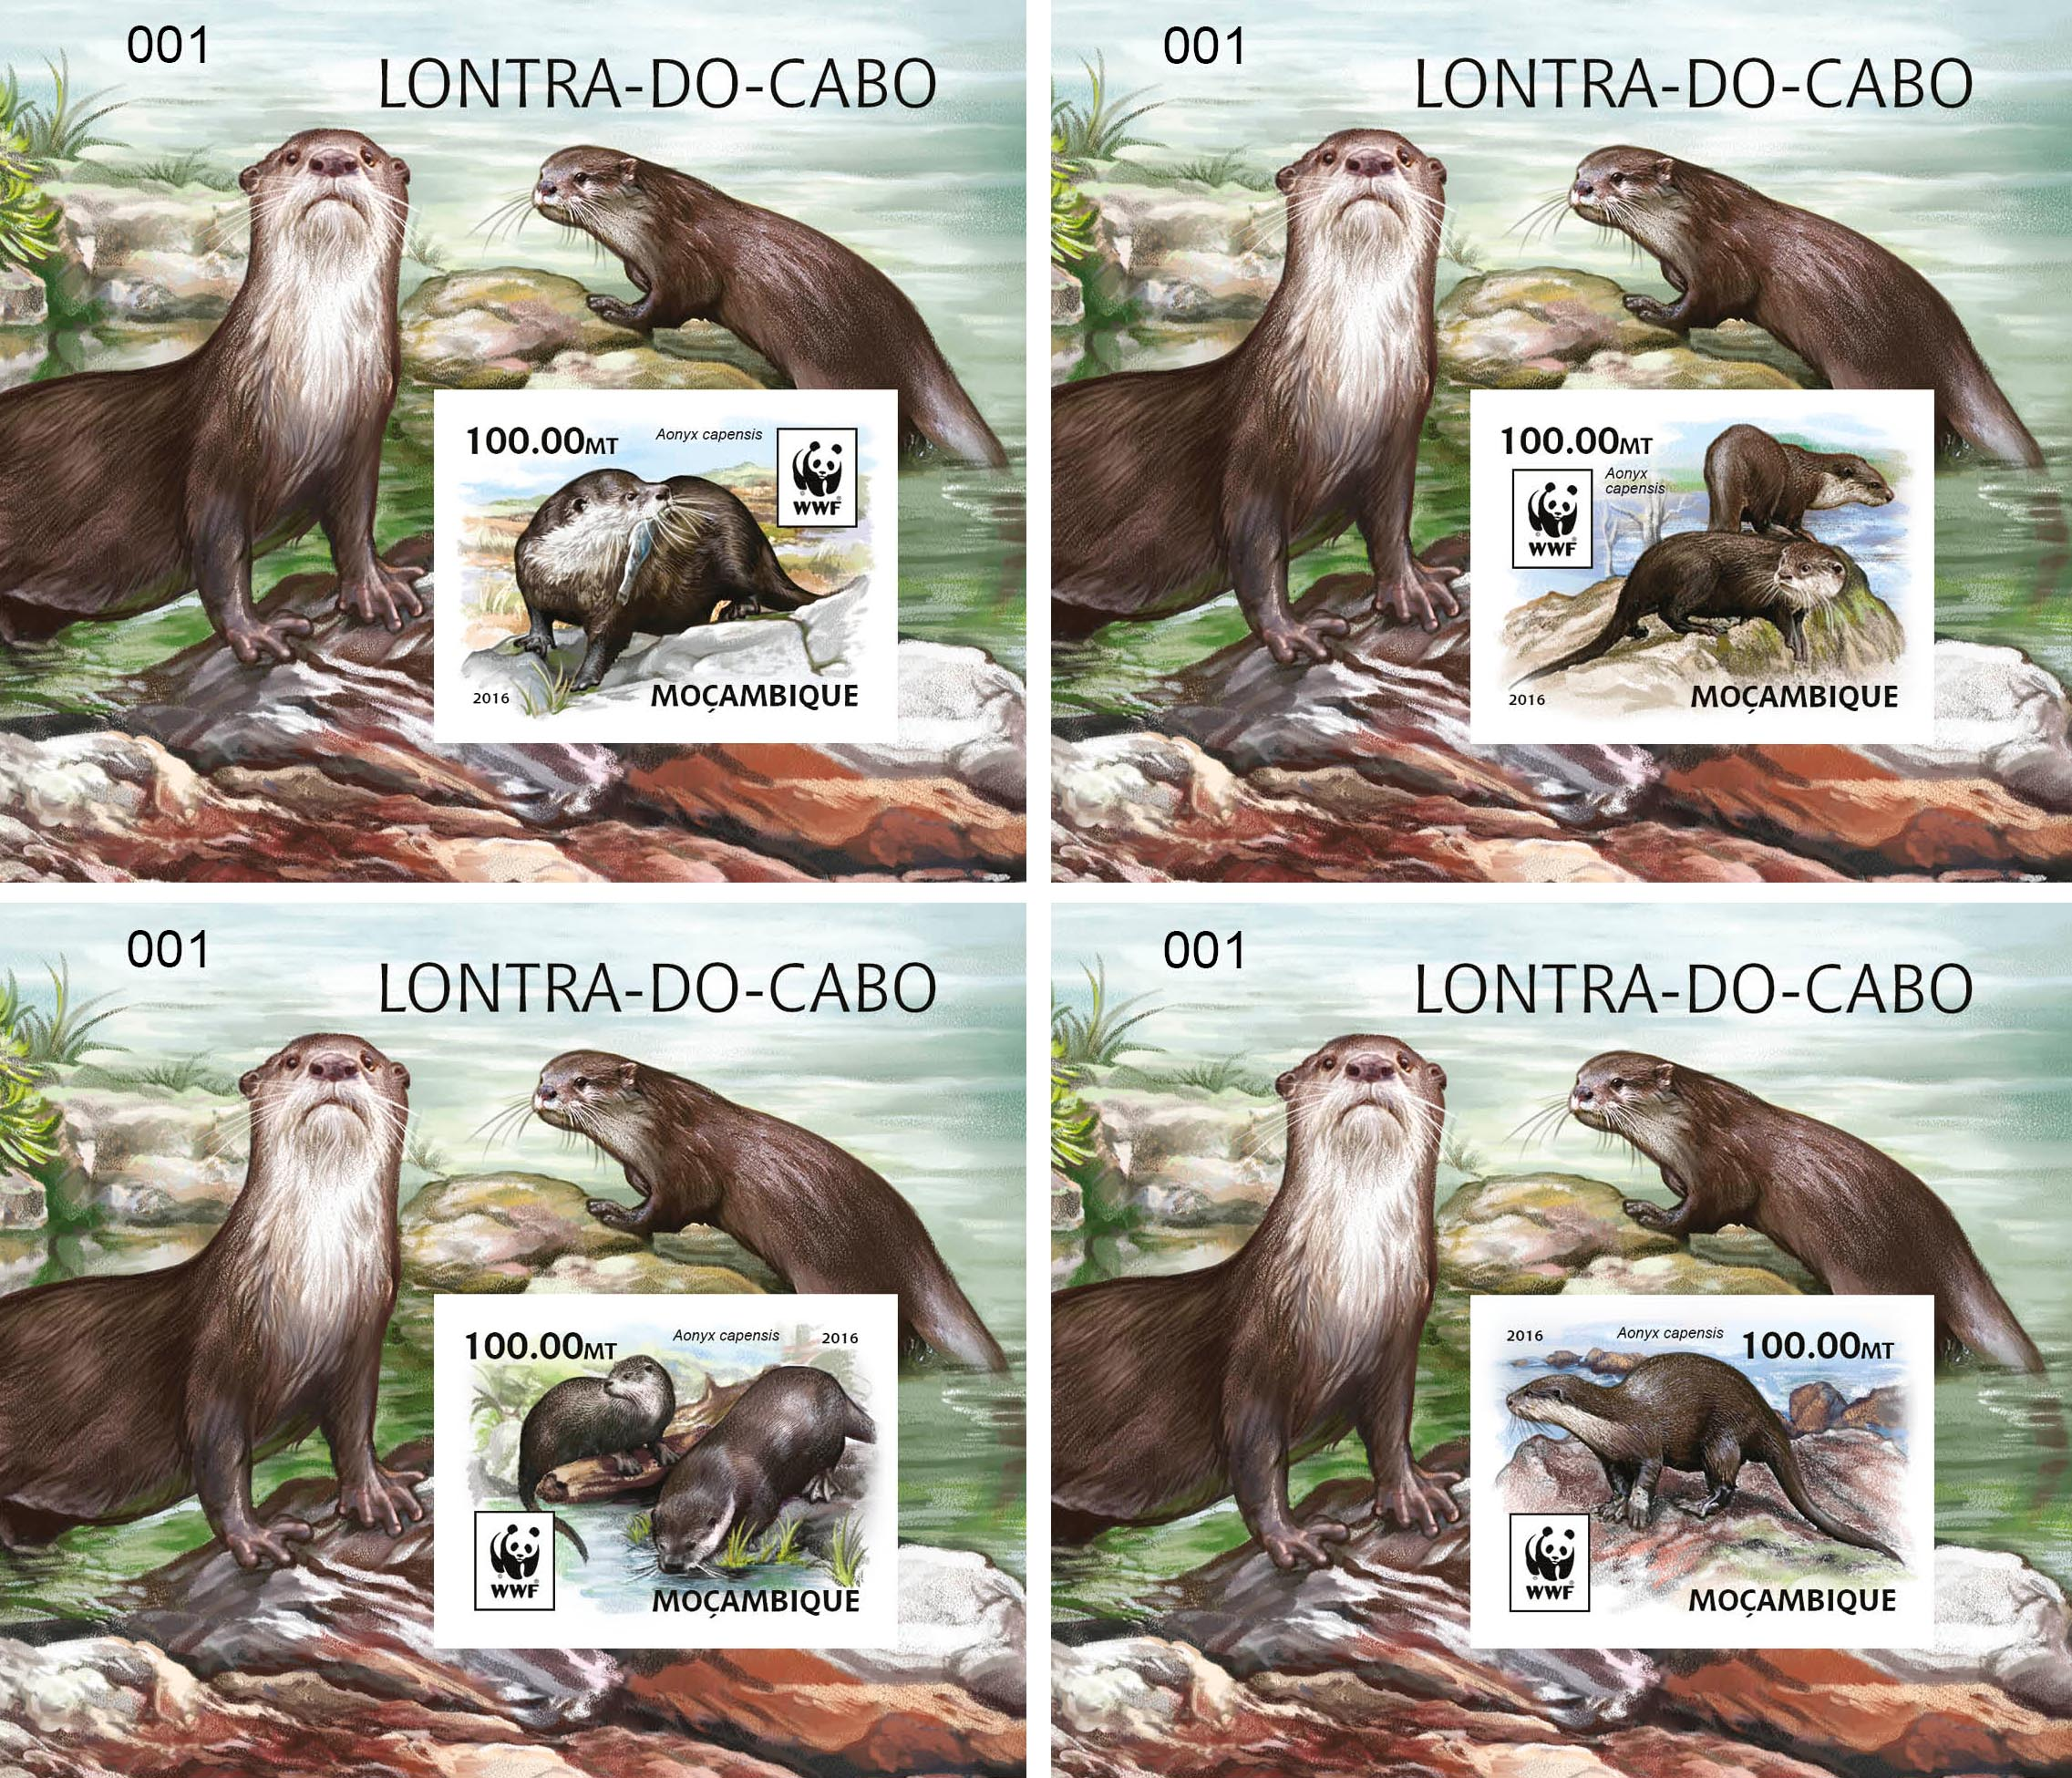 WWF – Otter (imperf. 4 delux) - Issue of Mozambique postage Stamps